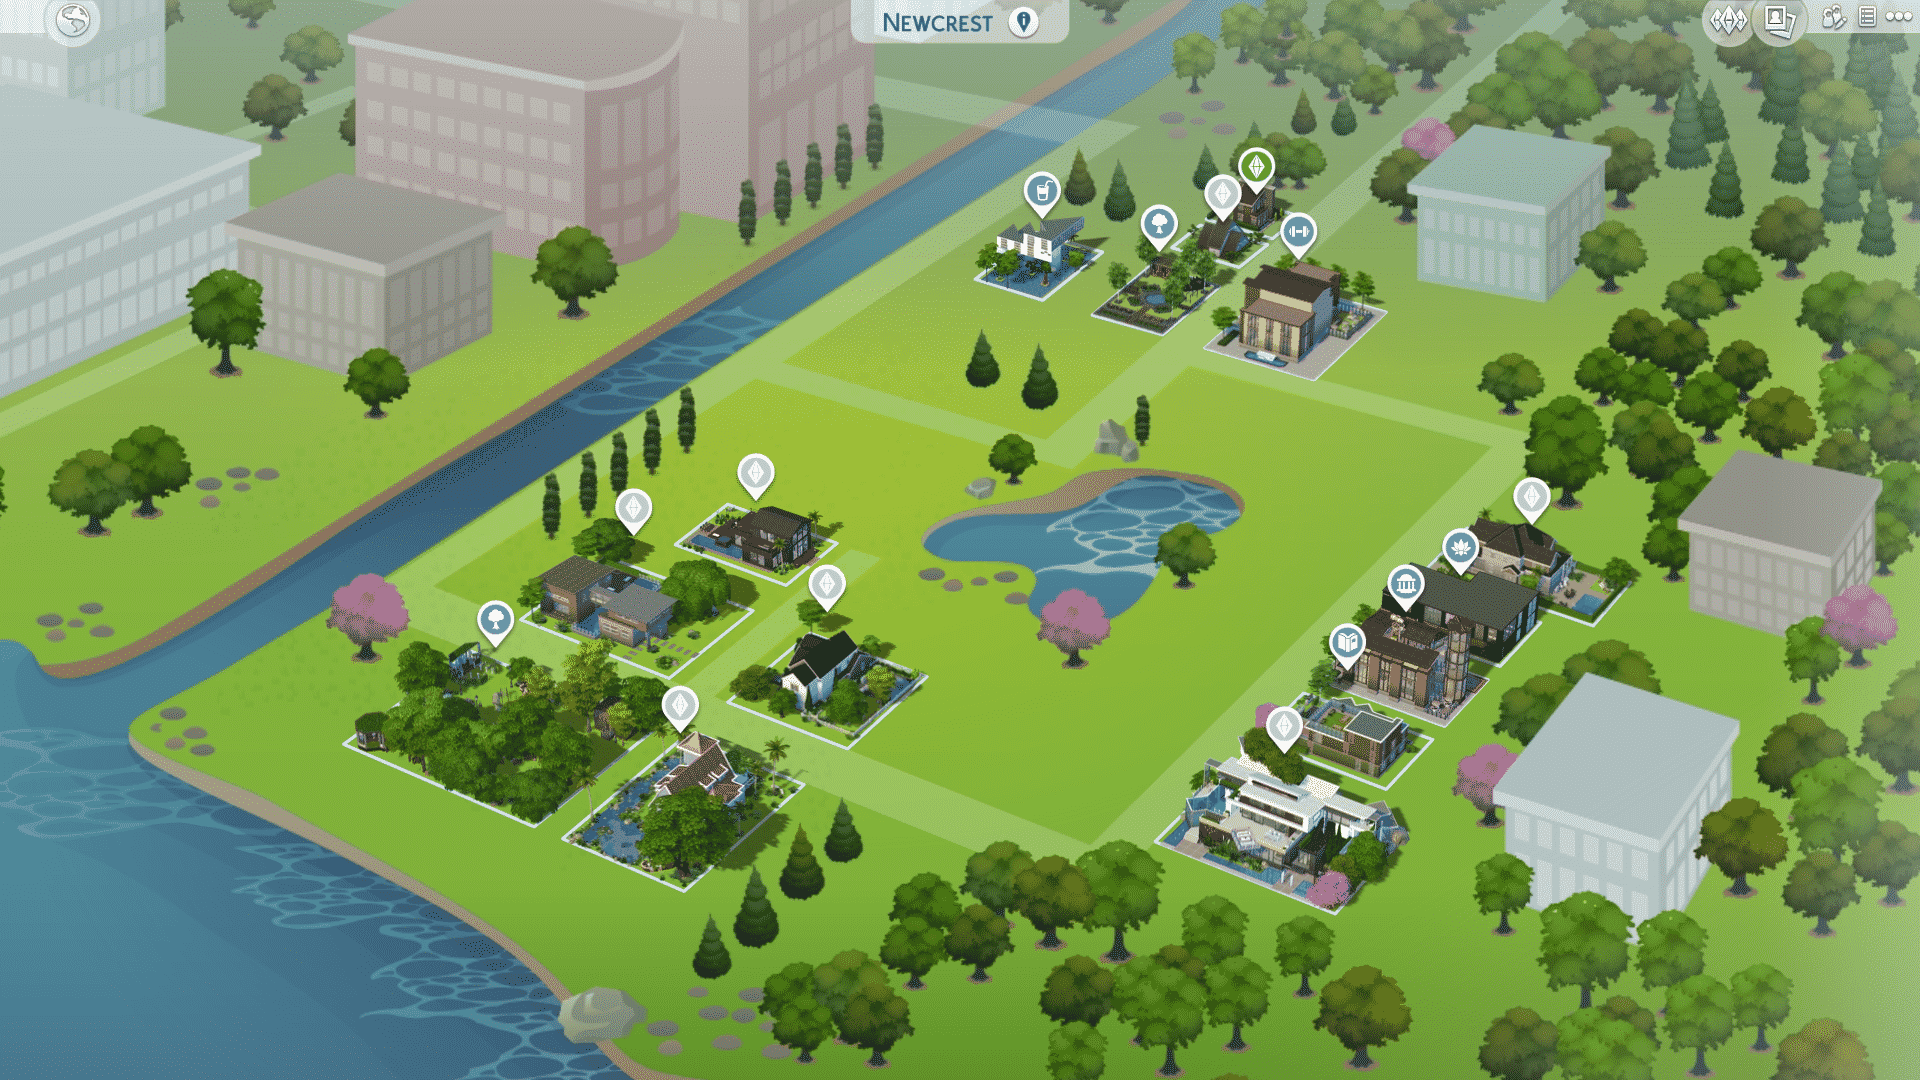 Sims 4 World Map Ps4 | Time Zones Map Sims Map on sims castaway, sims 3 houses, sims 3 university life cover, sims 3 yacht, sims 3 map, sims 3 zombie apocalypse, sims 3 sunlit tides, sims 3 mods, sims 3 train, sims 3 world's best, sims 3 weather, sims medieval map,